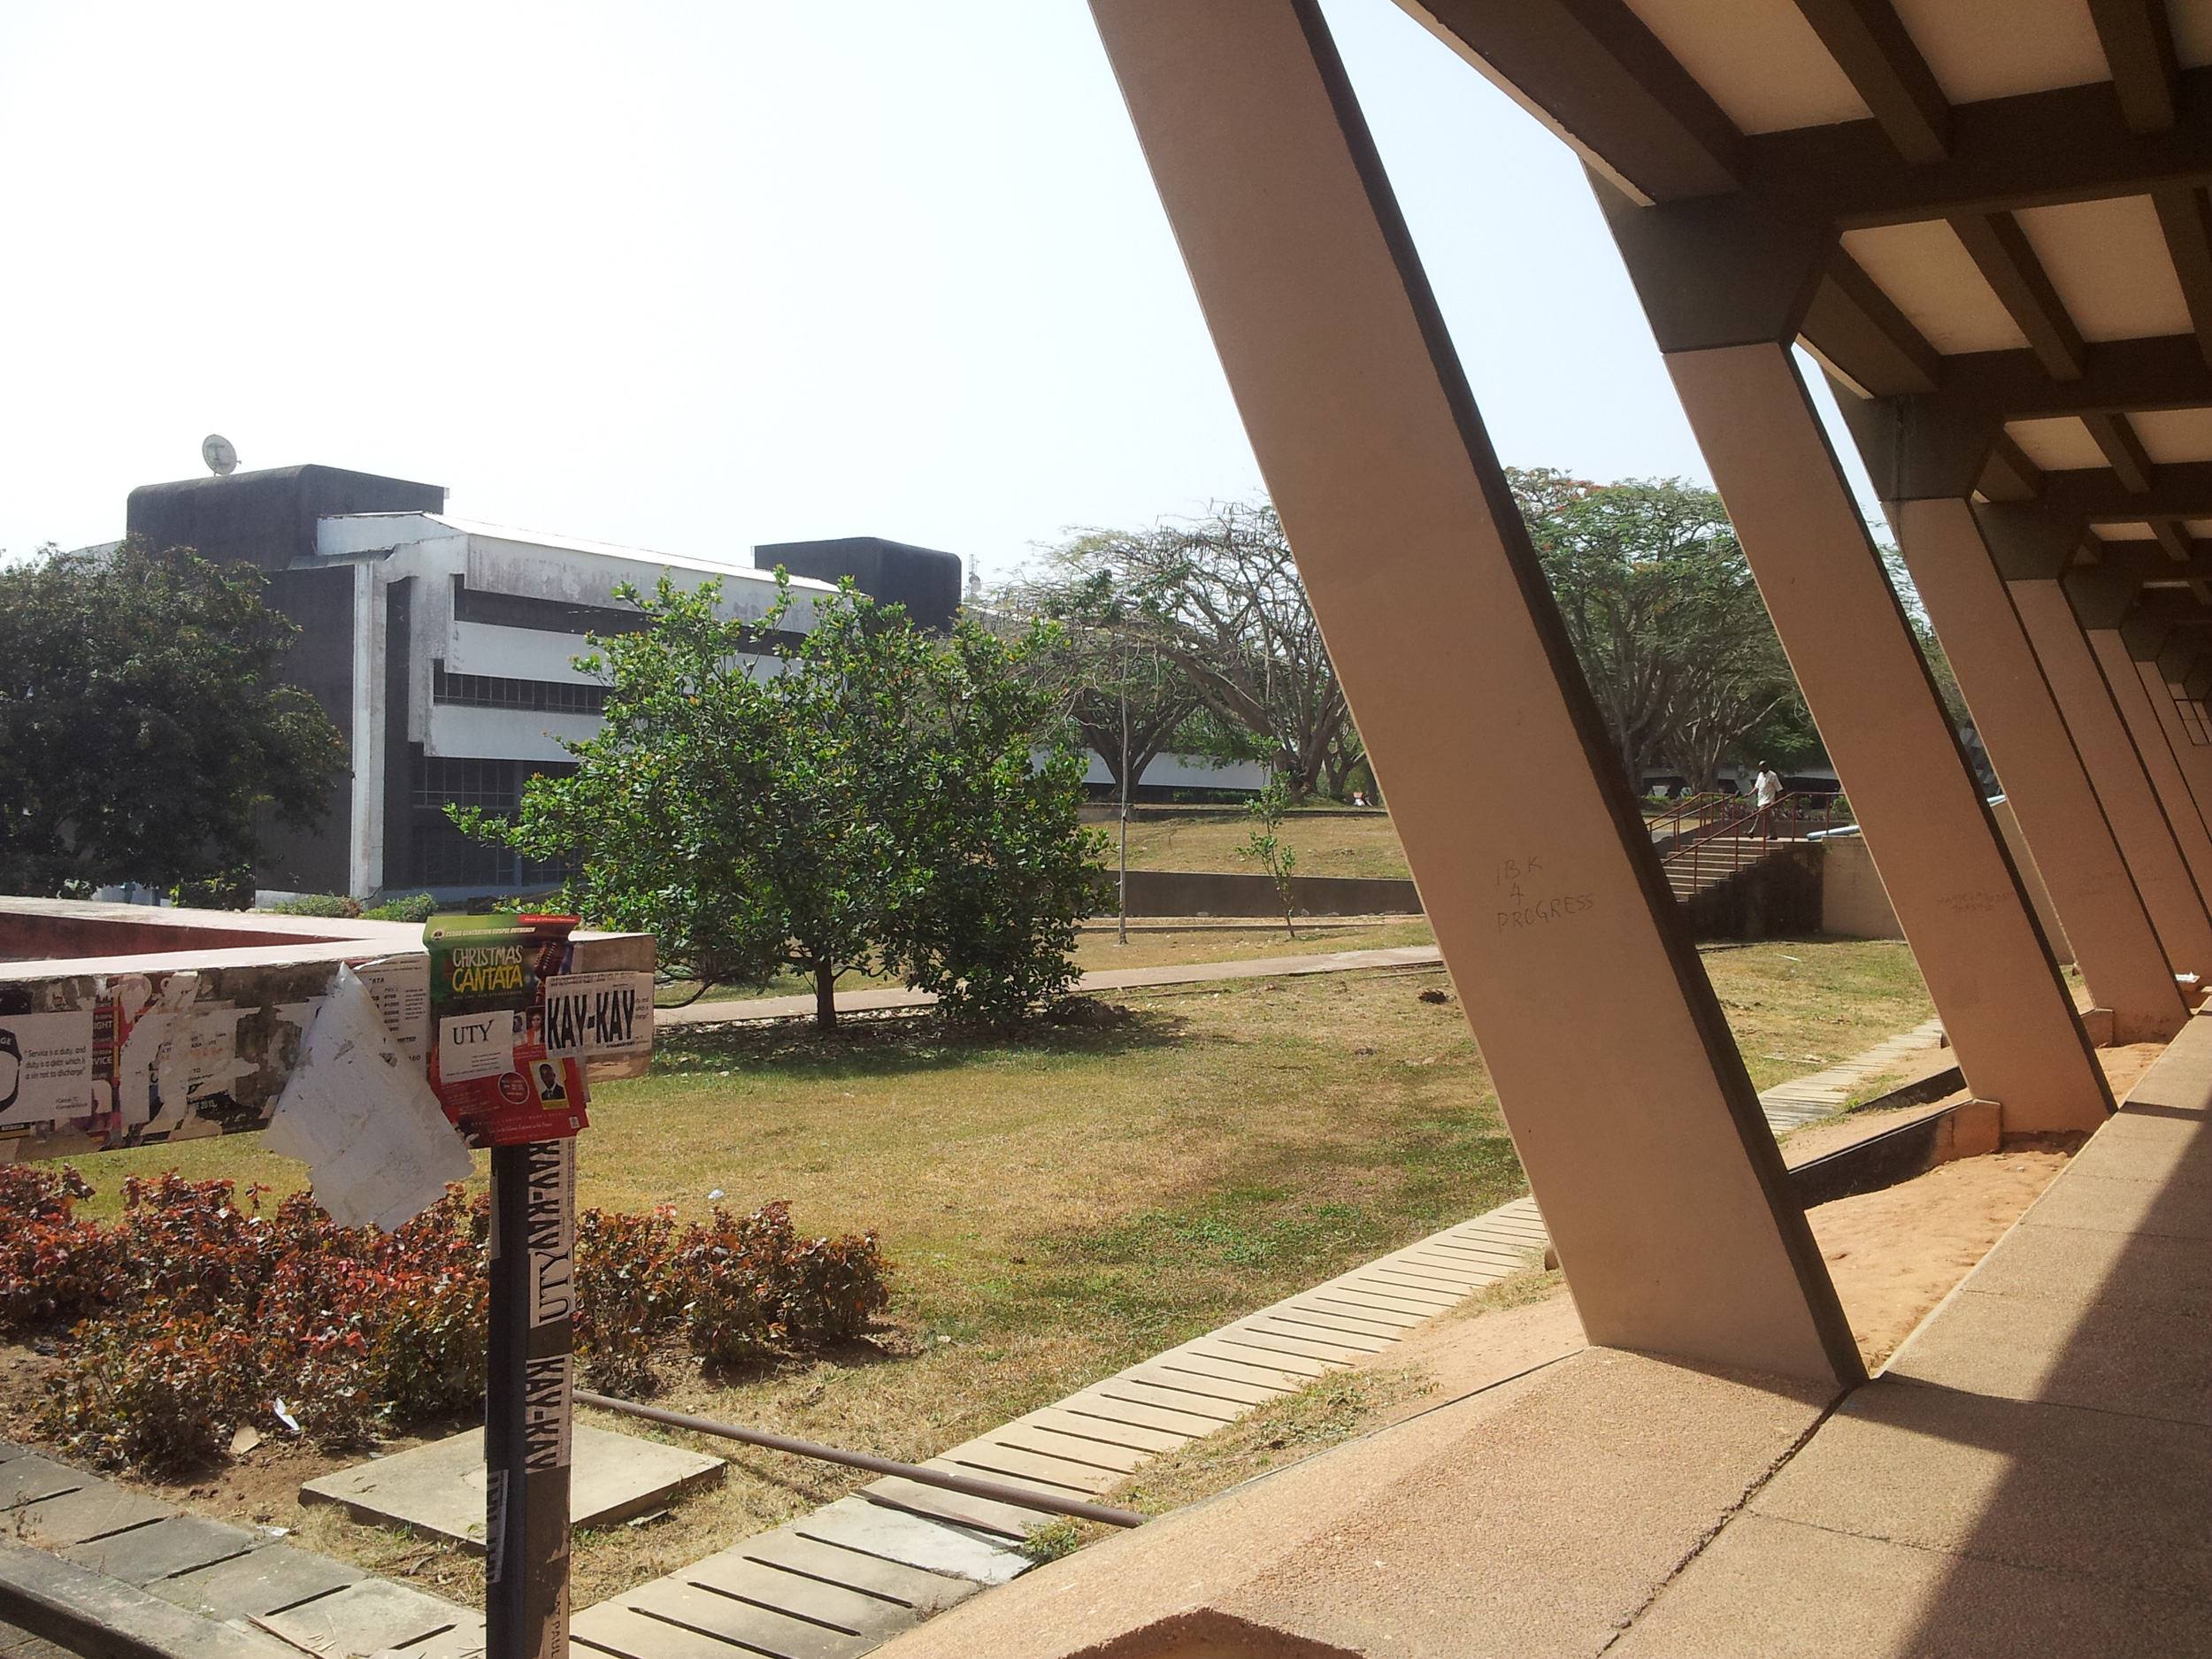 The university campus at the Ọbáfẹmi Awólọ́wọ̀ University, dry season,2015. Architect Arieh Sharon built it in 1970.The style is popular today as 'brutalist architecture', from the French term 'béton brut', raw concrete. It was a typical modernist's material in arts worlwide (compare the Sacred Grove of Osogbo).©orishaimage.com